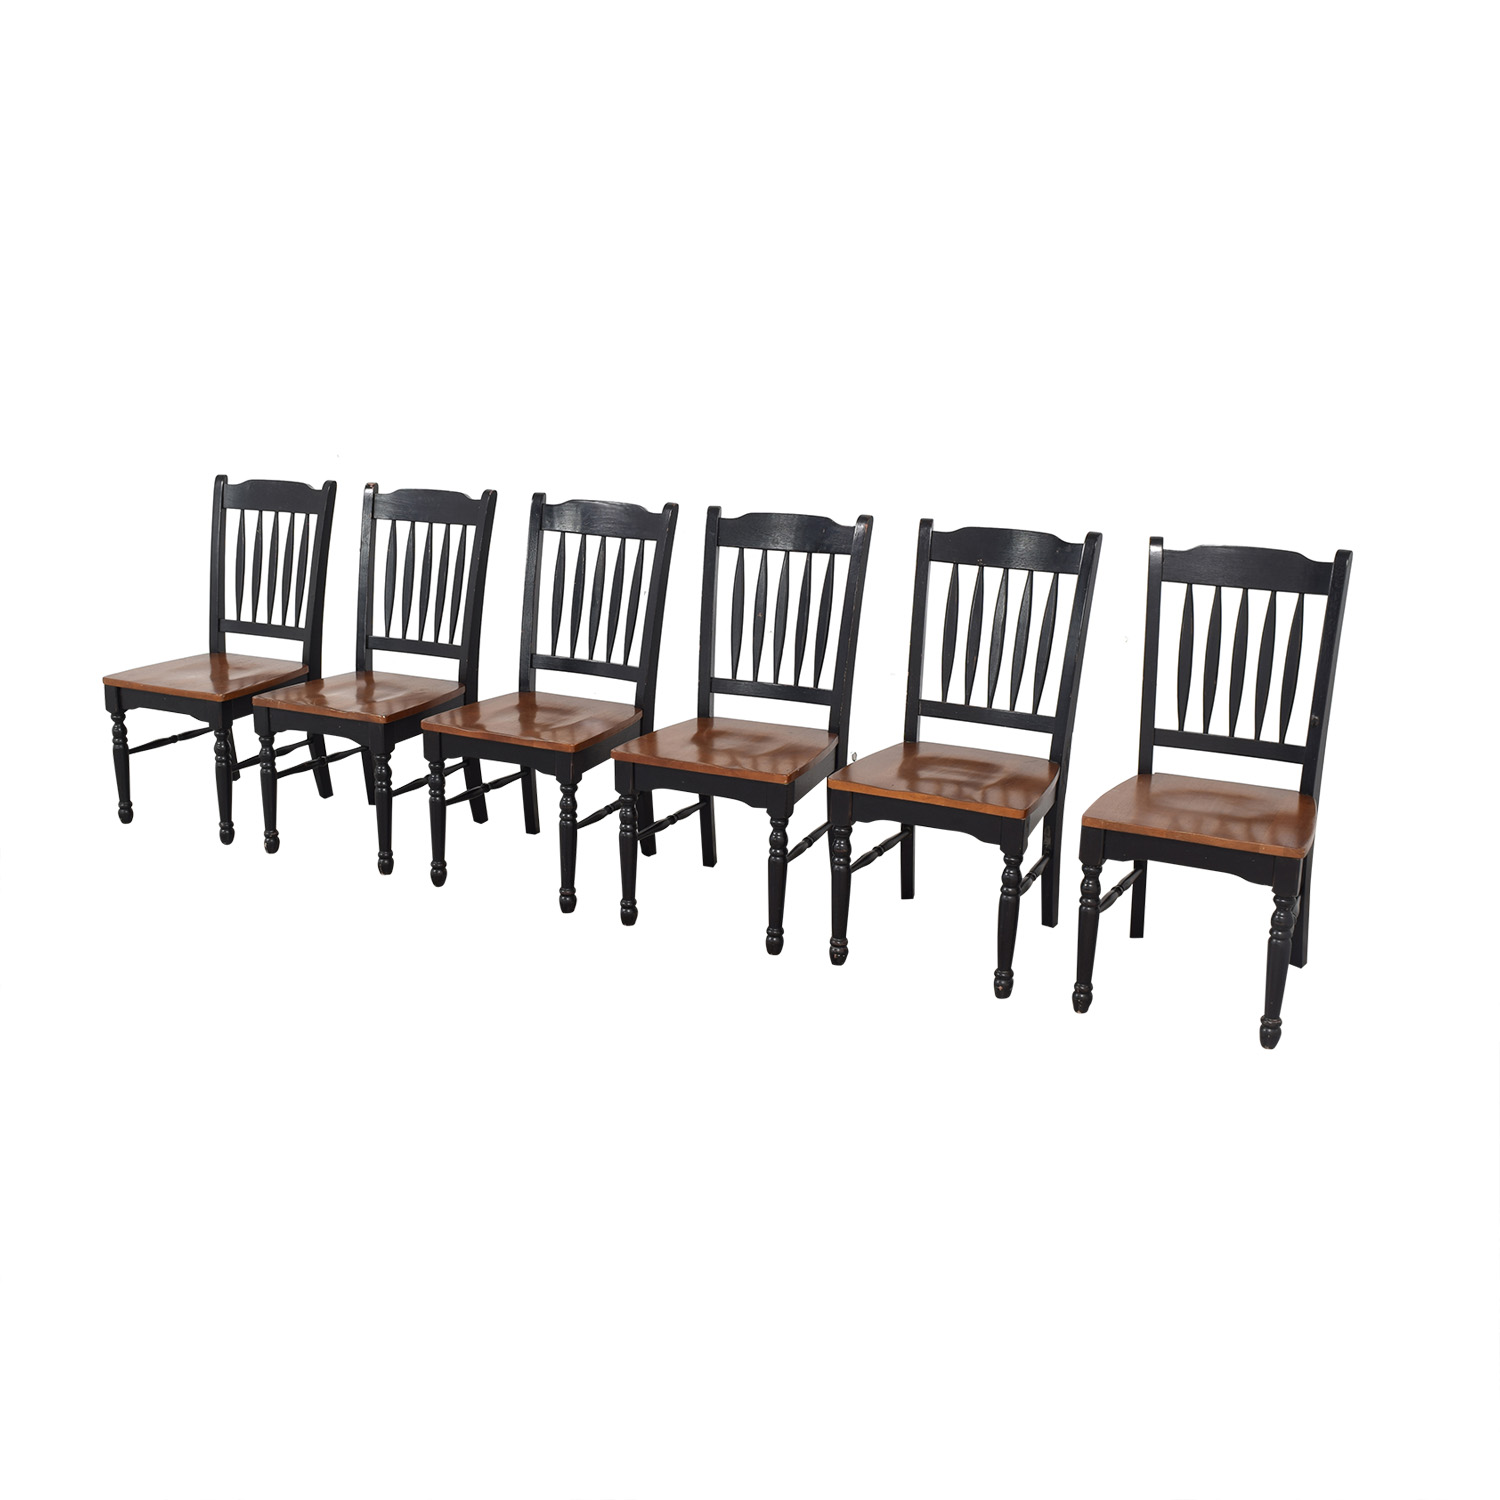 Pottery Barn Pottery Barn Spindle Back Dining Chairs ct